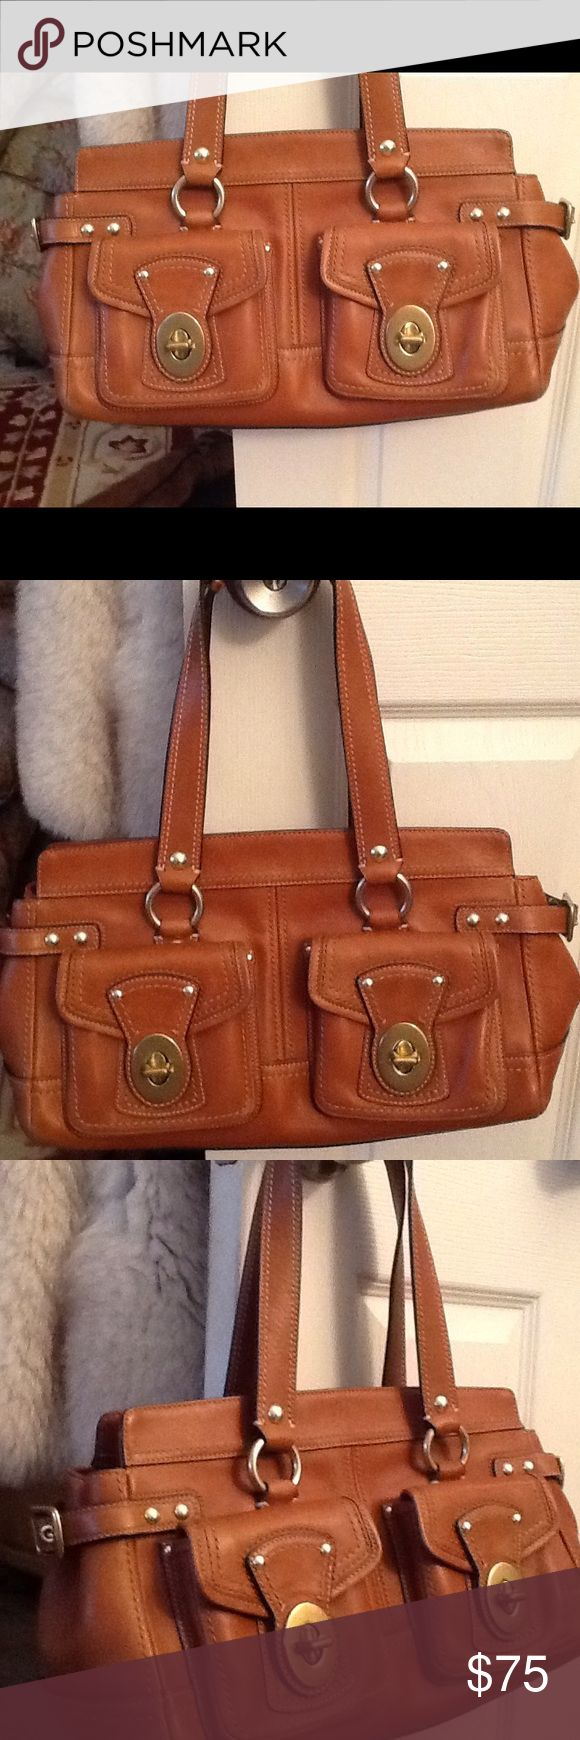 "COACH LEGACY BROWN LEATHER SATCHEL PURSE, NEW! NWOT Coach legacy brown leather satchel purse.  Gorgeous double front pockets.  Gold metal accents.  Generous size: 14.5"" X 8"". Roomy and gorgeous!  Will ship right away.  Check out my other designer items Coach Bags Satchels"